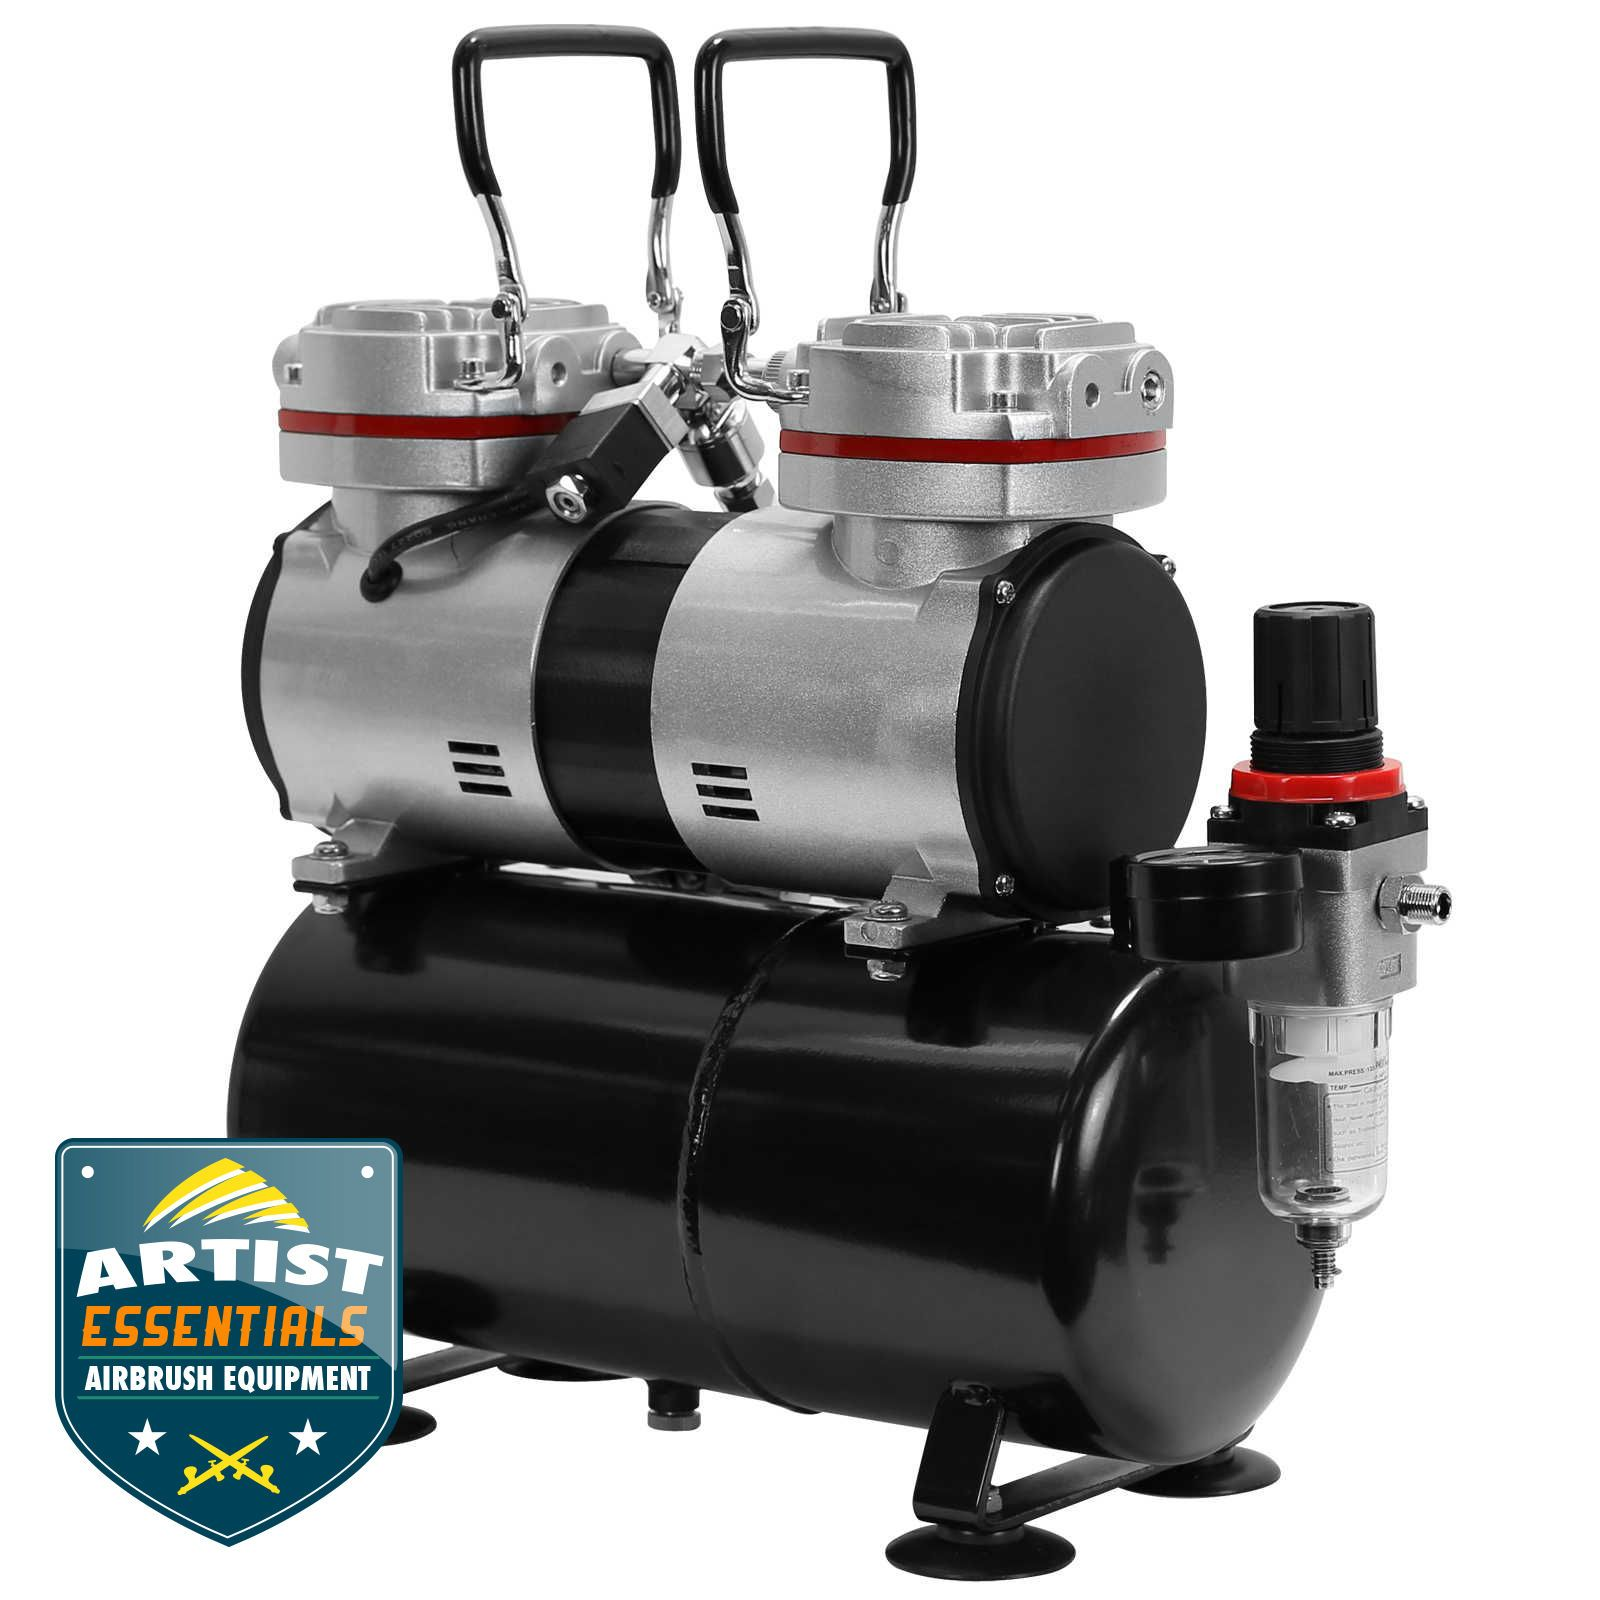 Details about 1/3 HP Twin Piston Airbrush Compressor